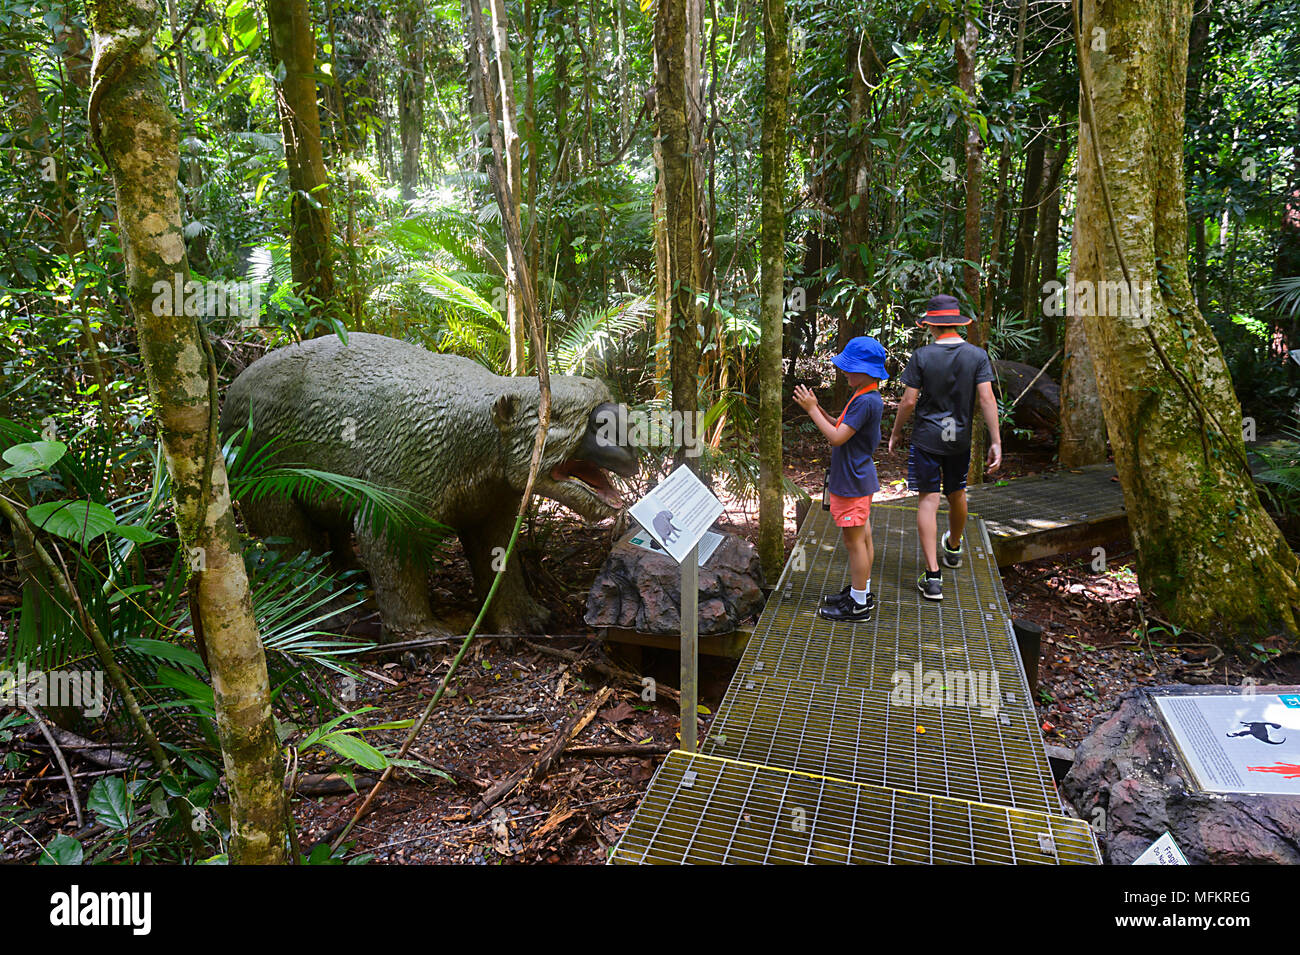 Children looking at an extinct giant wombat Diprotodon in the Jurassic Forest, Daintree Discovery Centre, Daintree National Park, Fa - Stock Image